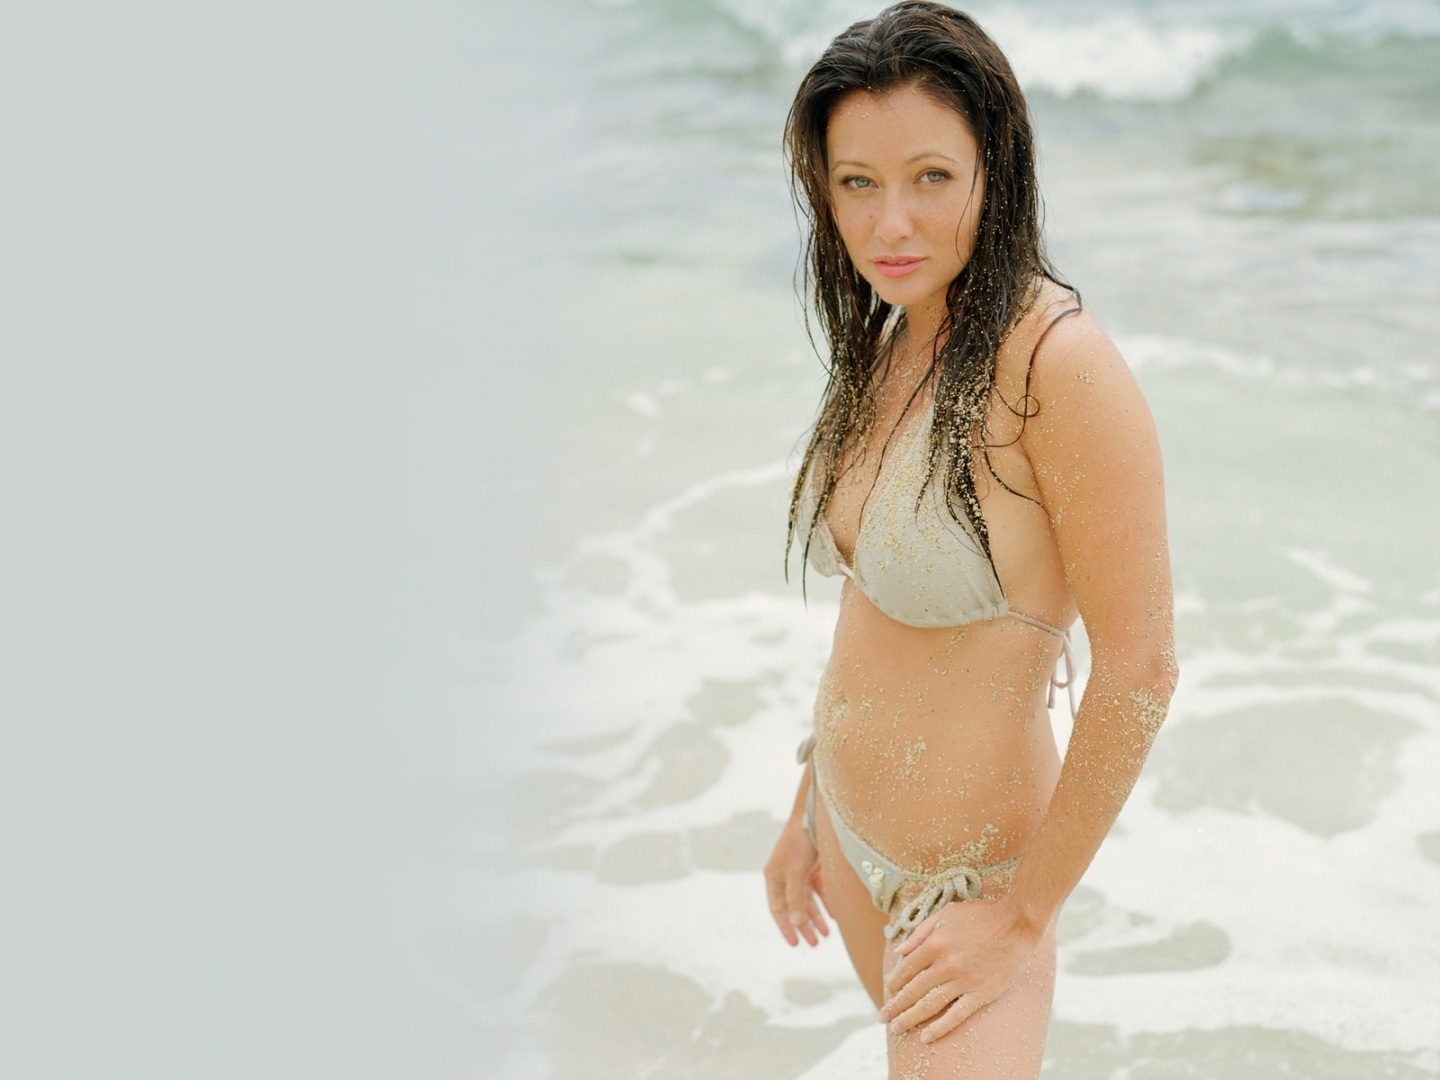 1440x1080 - Shannen Doherty Wallpapers 24